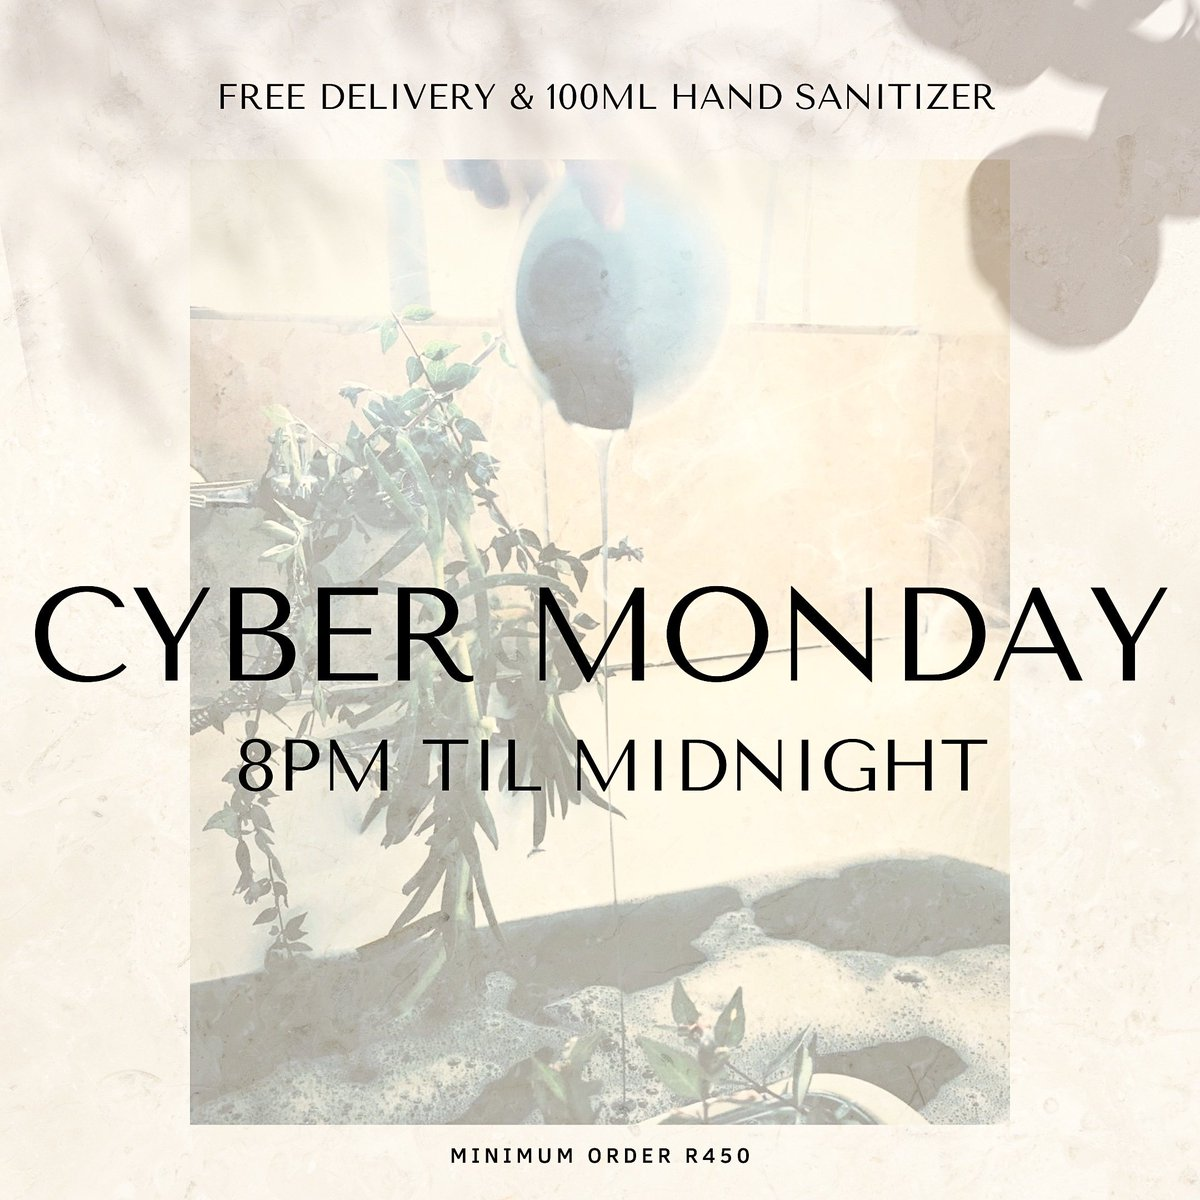 Were Introducing #CyberMonday every Monday from 8pm til Midnight. Shop Freshly made Essentials online for a minimum of R450 & get FREE Delivery + 100ml Hand Sanitizer Calculated automatically when you check out. Only available in Gauteng.... For now. #BeUnrefined